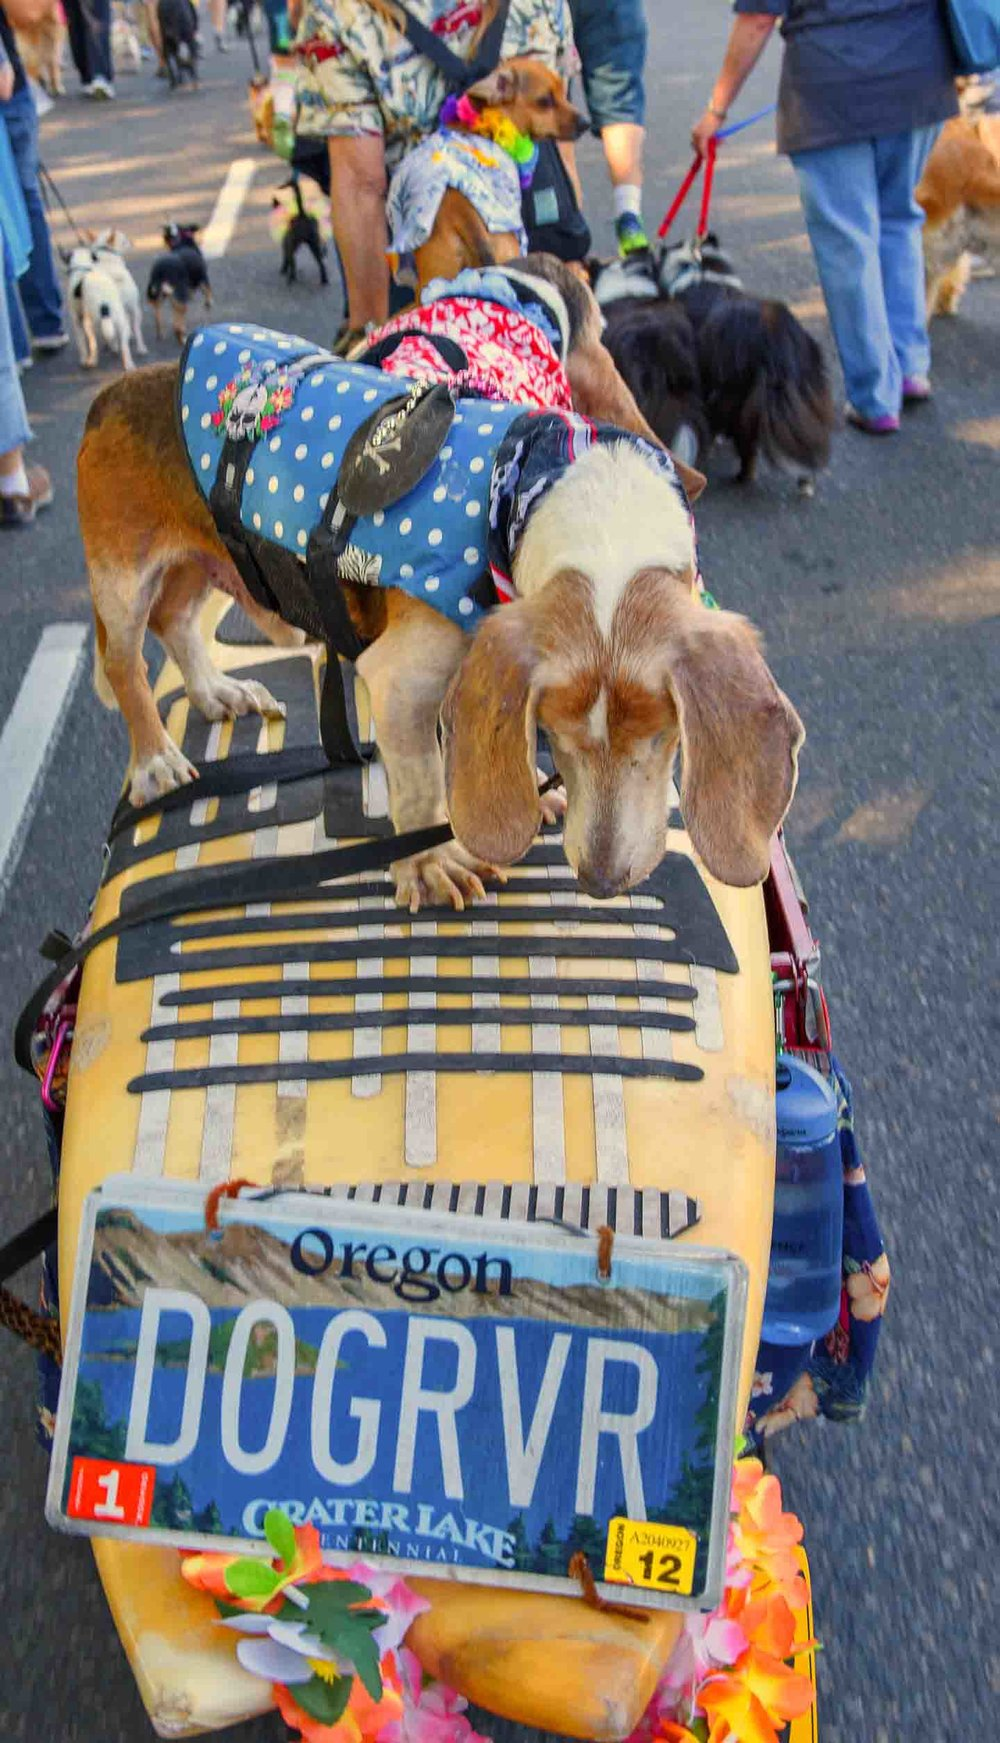 MAY 2015 - 3 surf dogs on board for Doggie Dash - a fundraiser for Oregon Humane Society Photo: (c) Barb Ayers, DogDiary.org